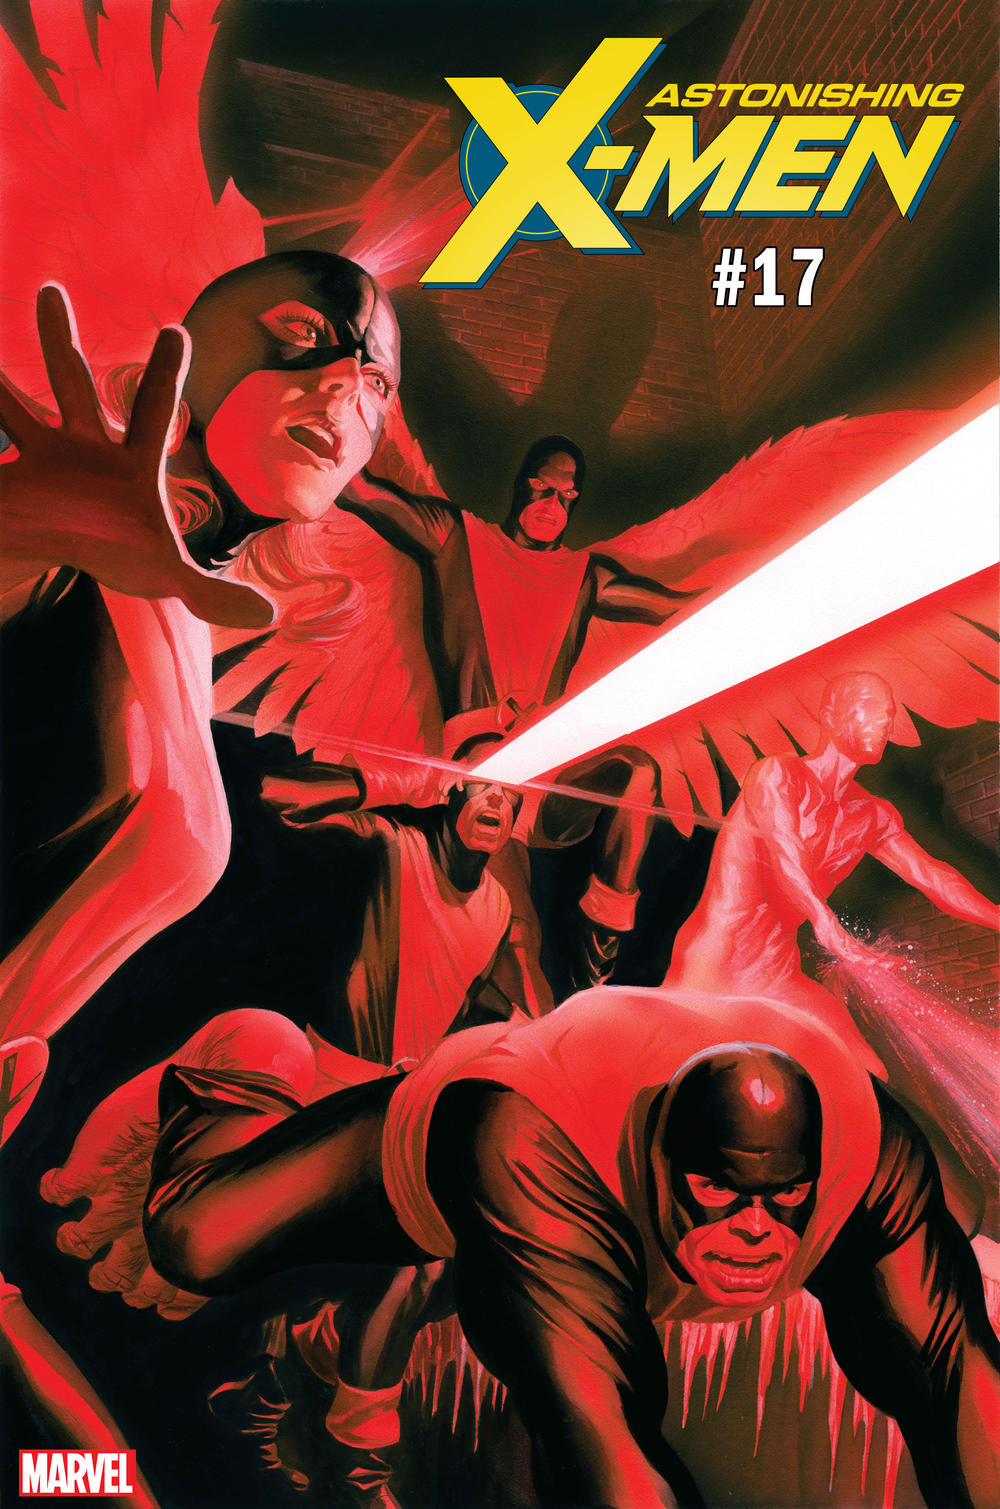 ASTONISHING X-MEN #17 UNCANNY X-MEN VARIANT COVER by Alex Ross